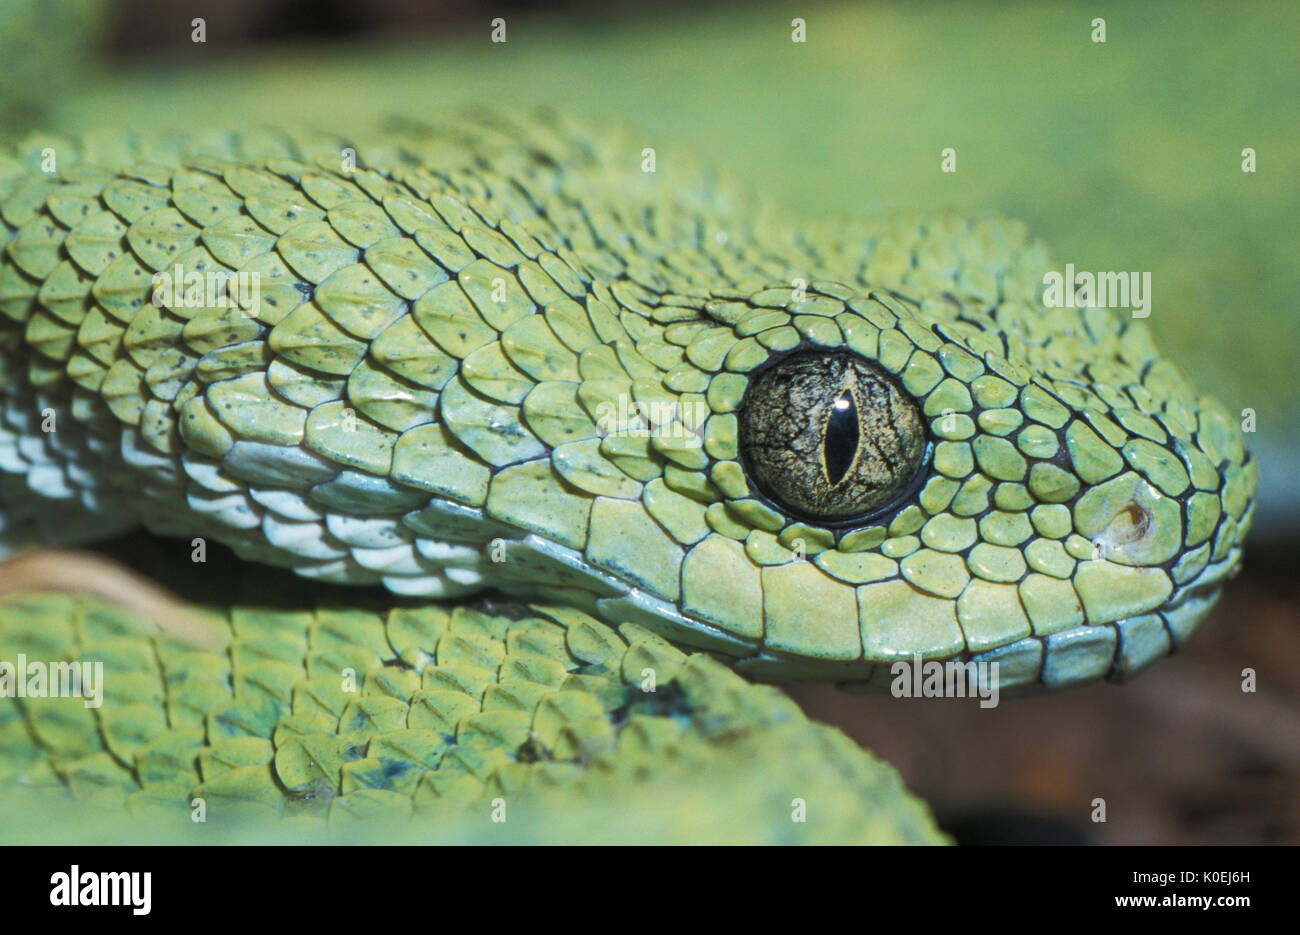 West African Bush Viper Snake, Atheris chlorechis, Africa, found only in the forests of West Africa, in  Guinea-Bissau, Guinea, Sierra Leone, Liberia, - Stock Image